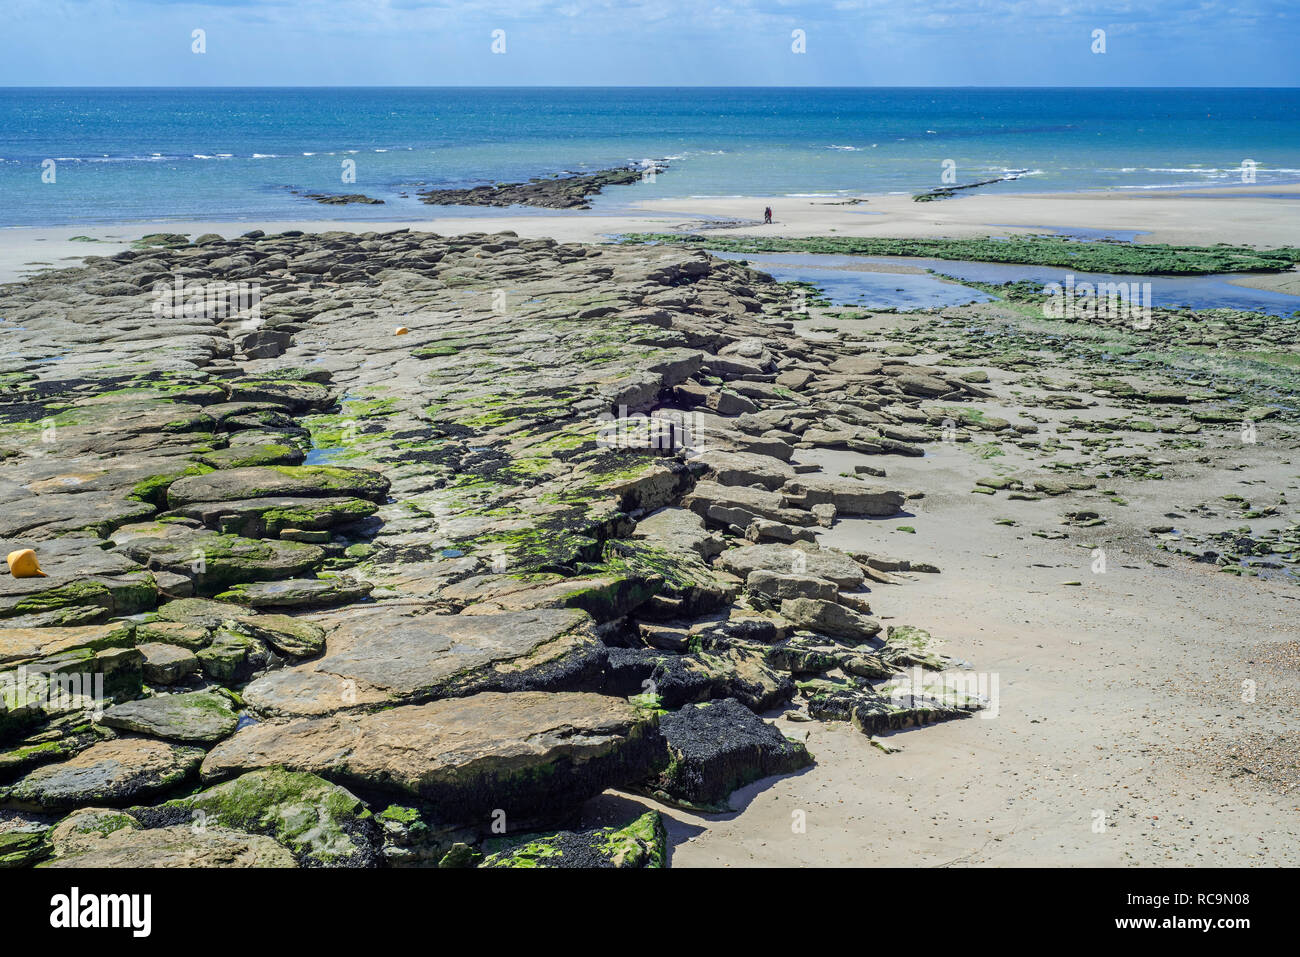 Jurassic rock layers exposed at low tide on the beach at Ambleteuse along rocky North Sea coast, Côte d'Opale / Opal Coast, France - Stock Image